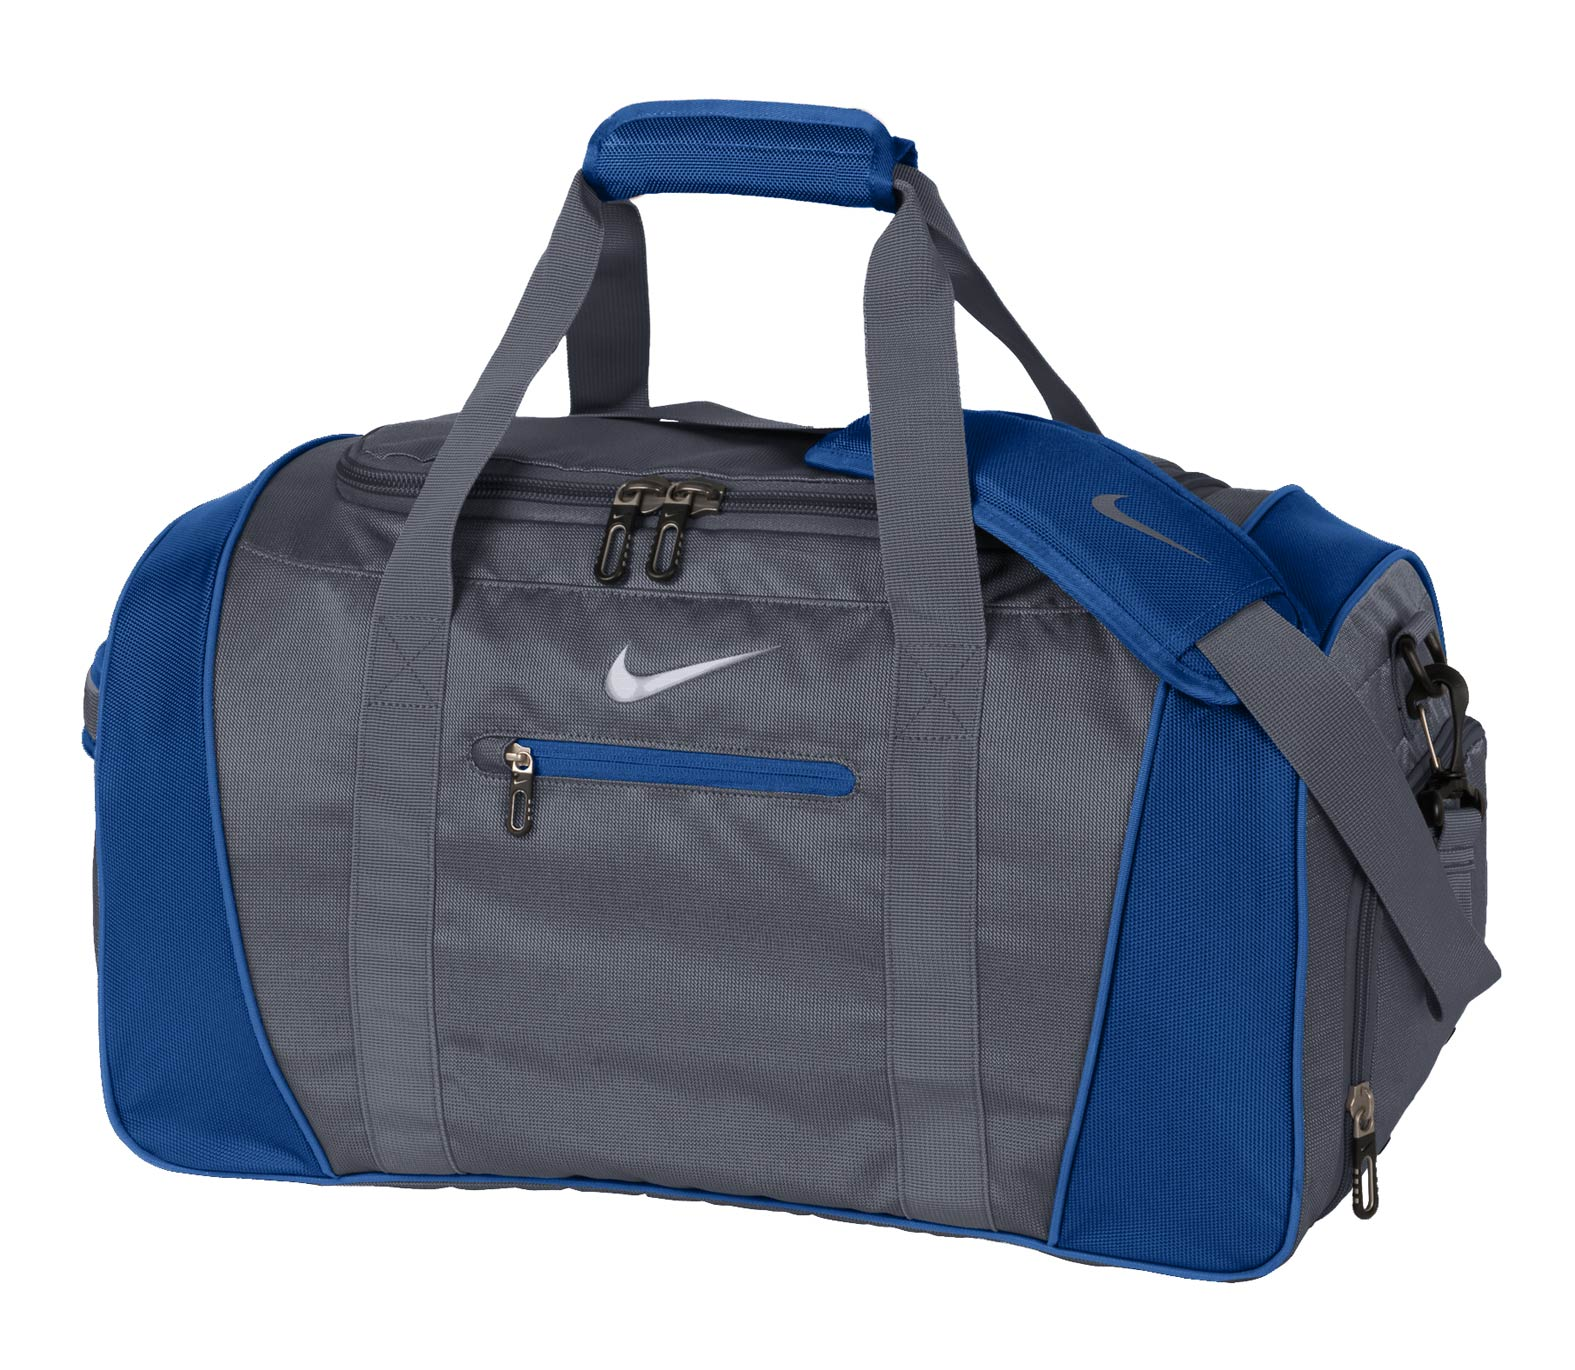 Nike Golf Medium Duffle